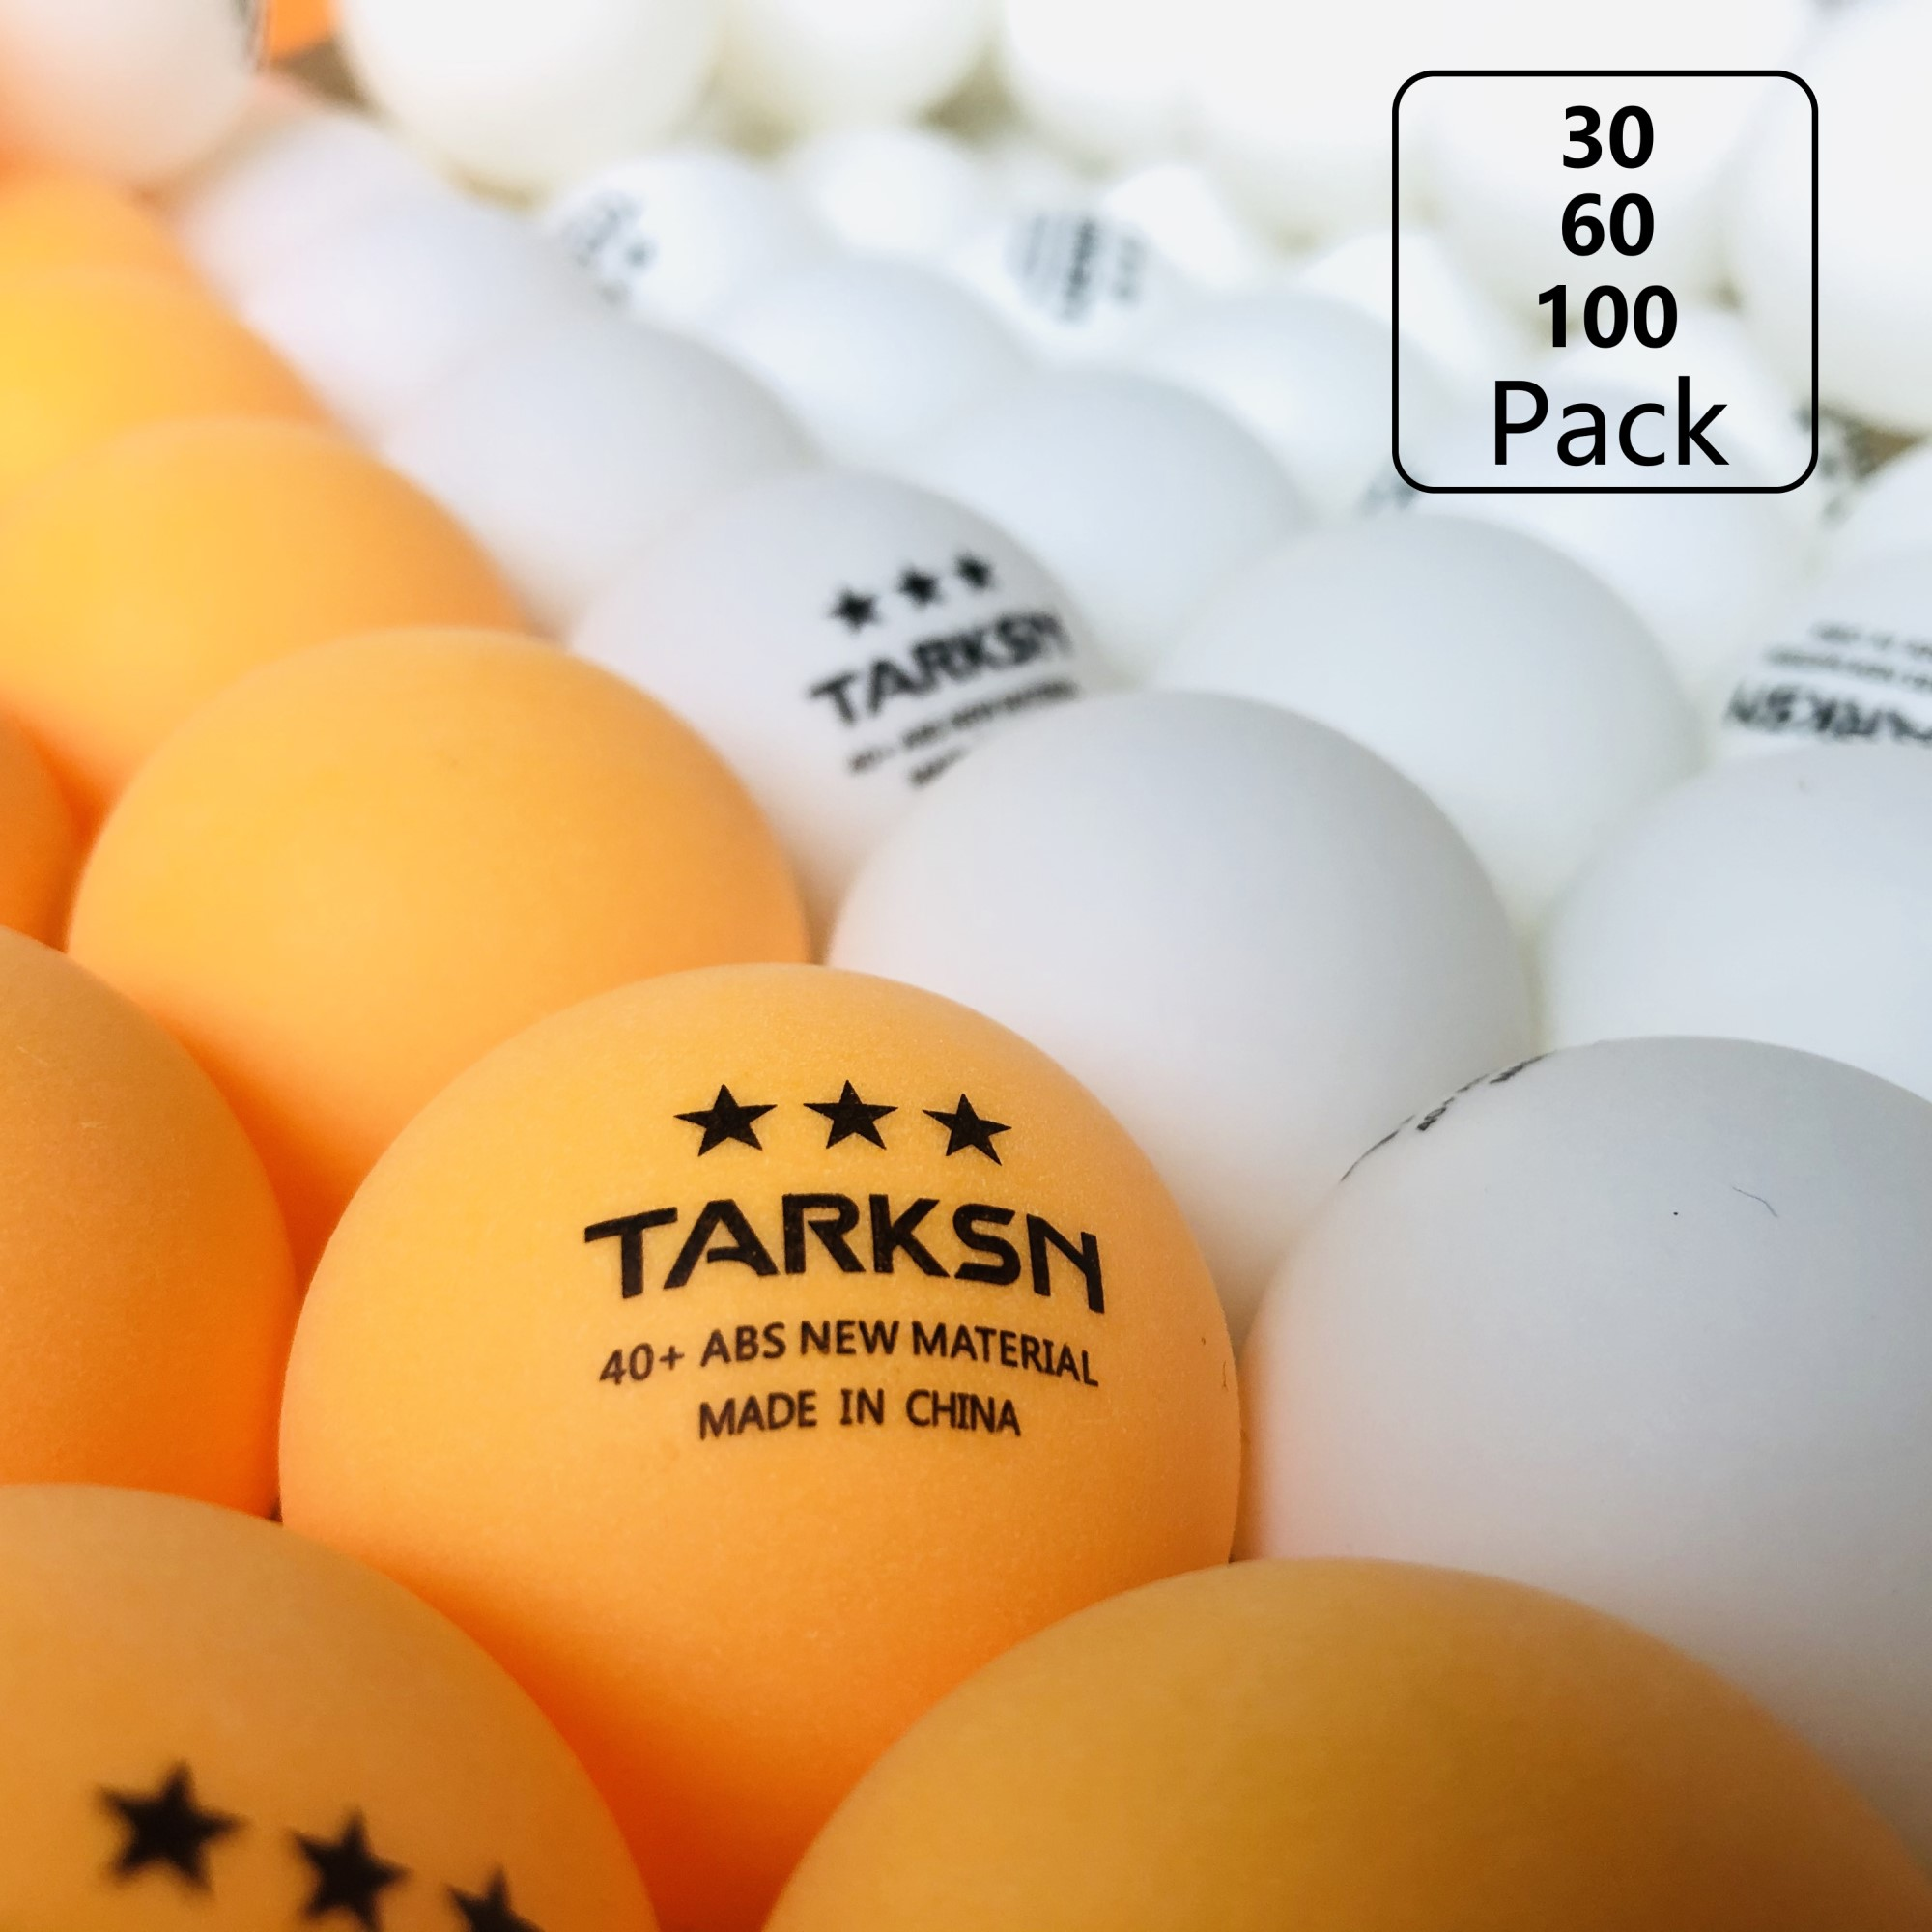 New Material Ping Pong Balls 3 Star 40+ Table Tennis Ball 30 60 100pcs for Professional Training 1